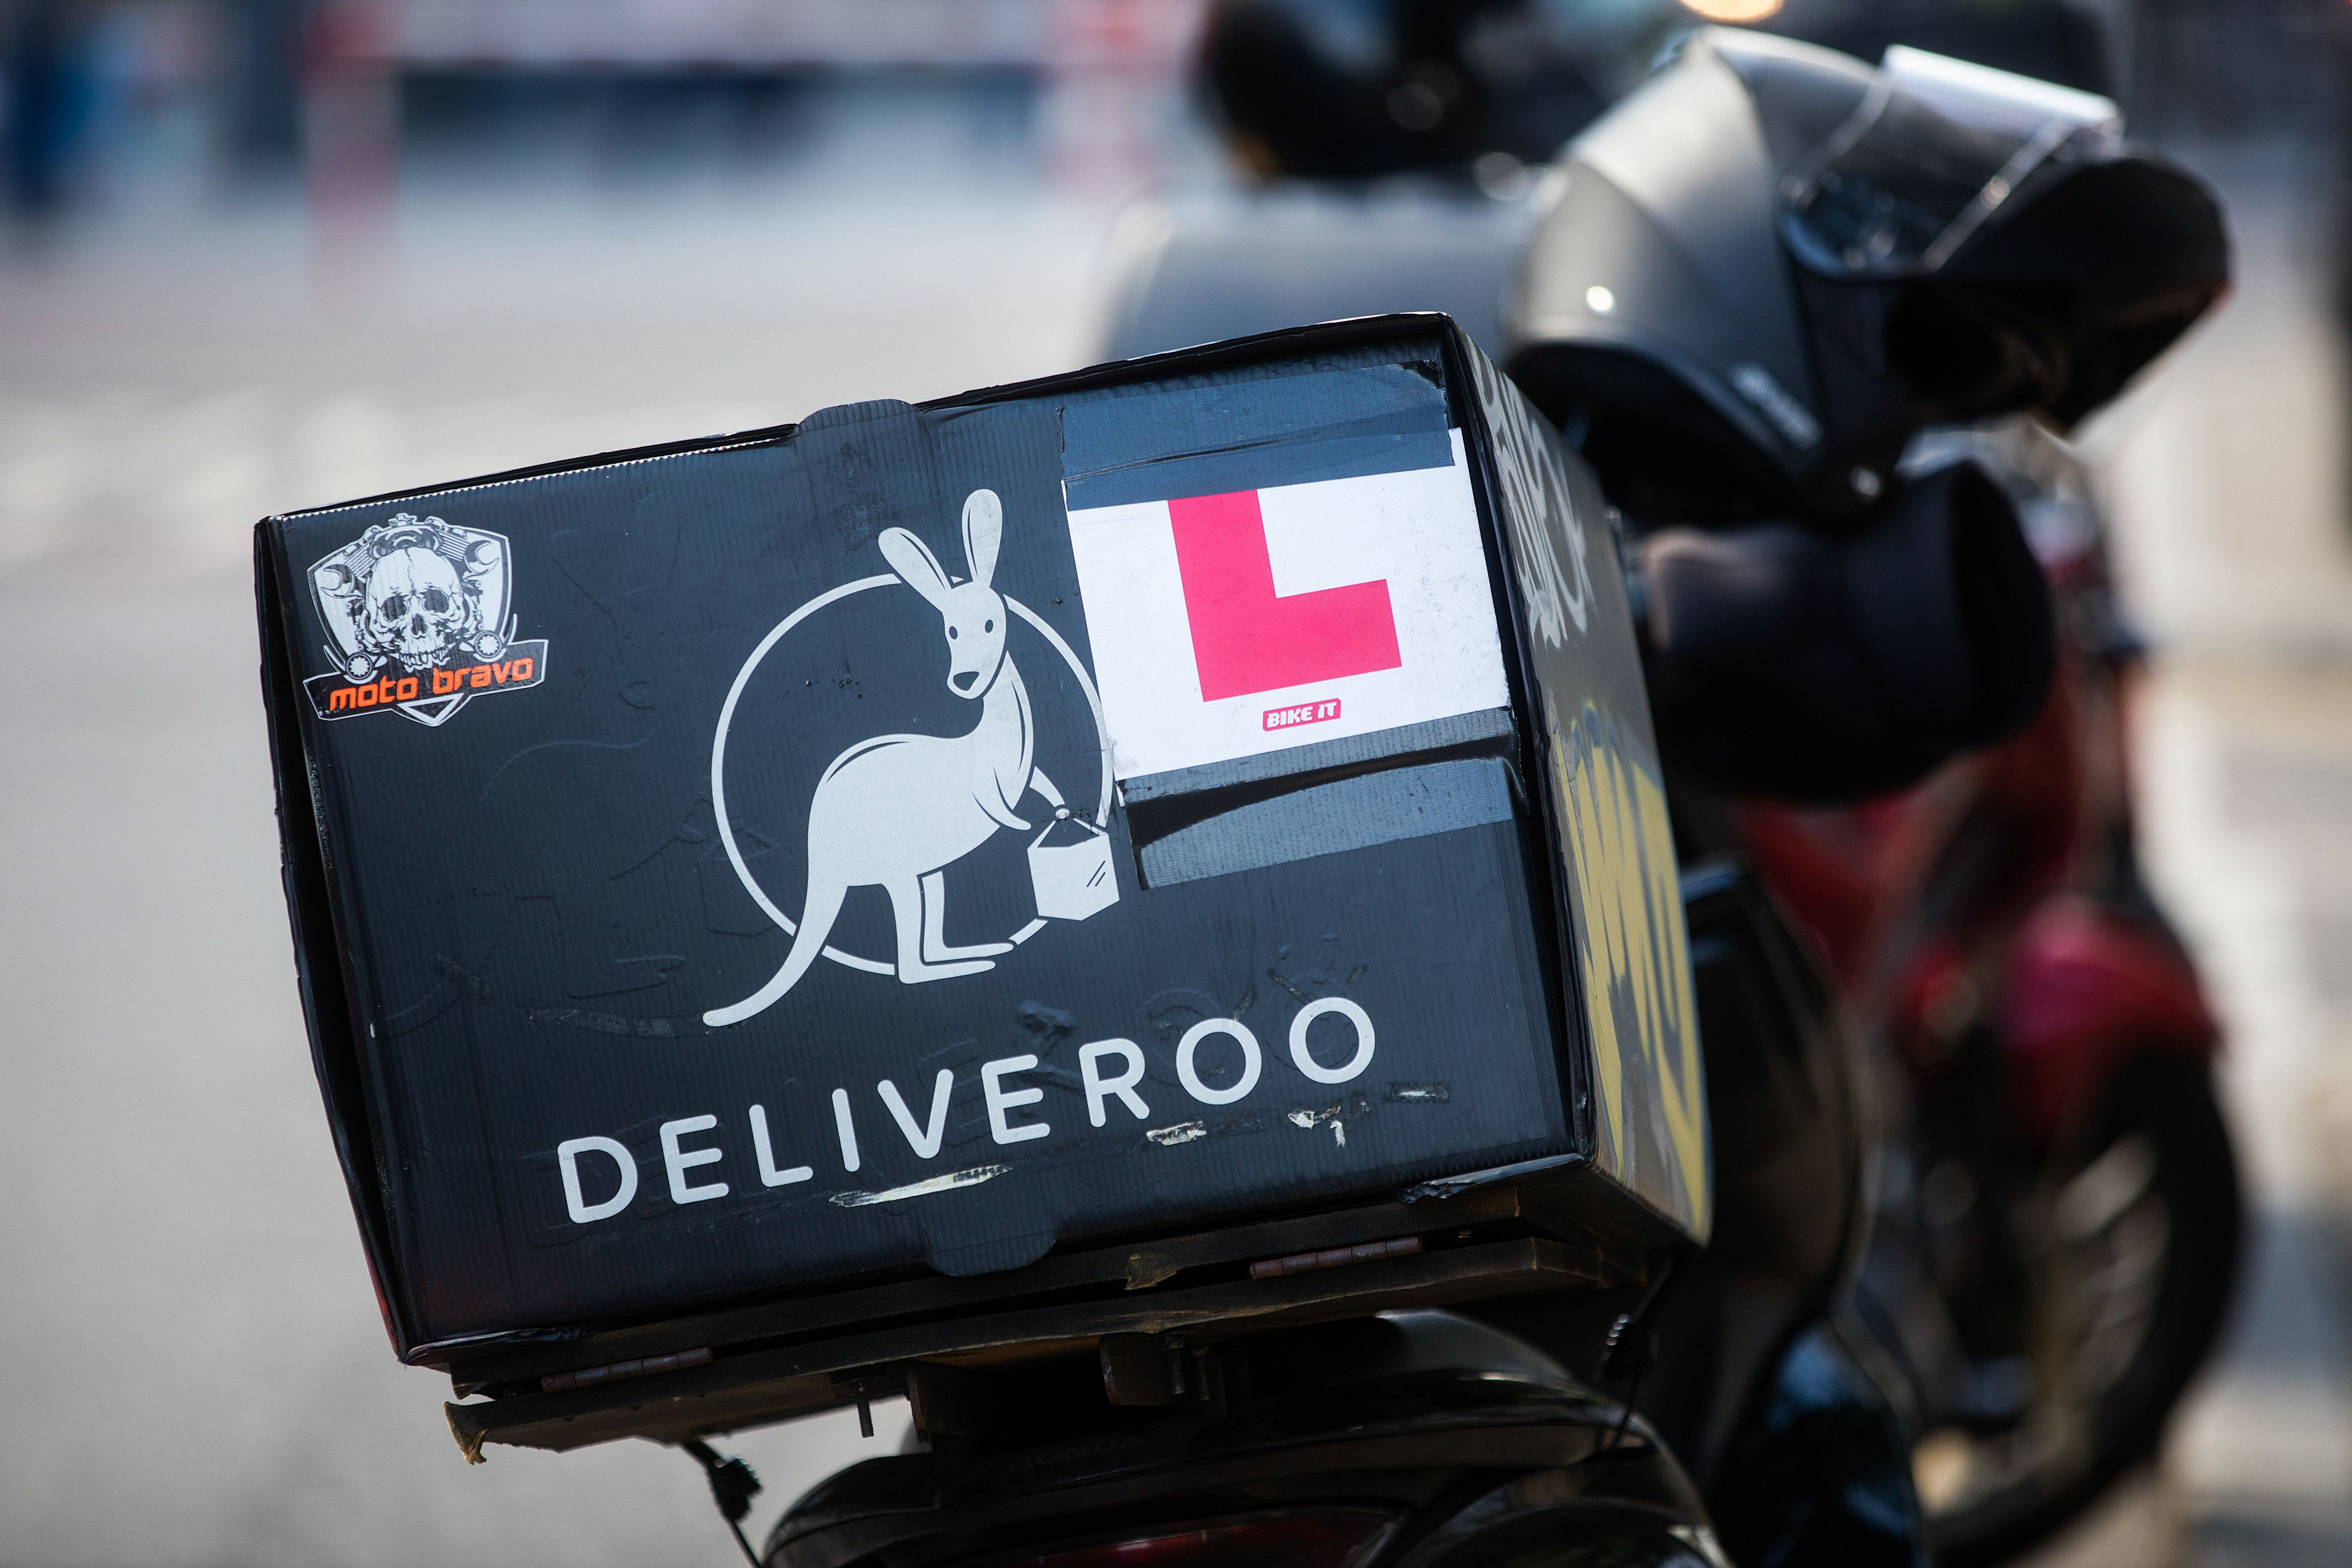 Deliveroo Hit By 'Hacking' Claims As Customers Report